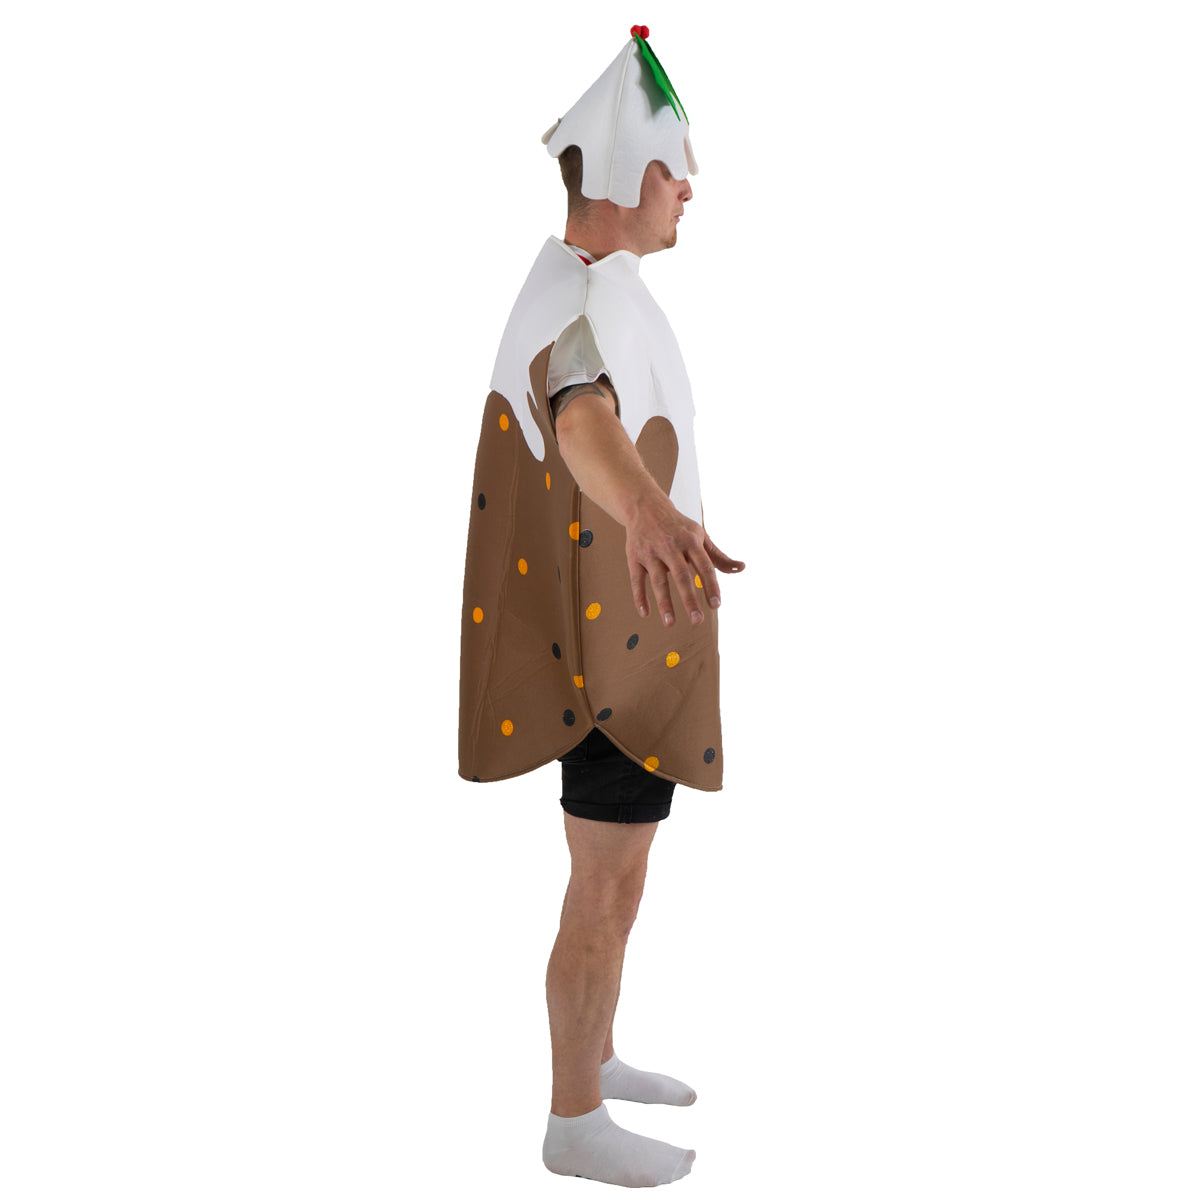 Bodysocks - XMAS PUDDING COSTUME